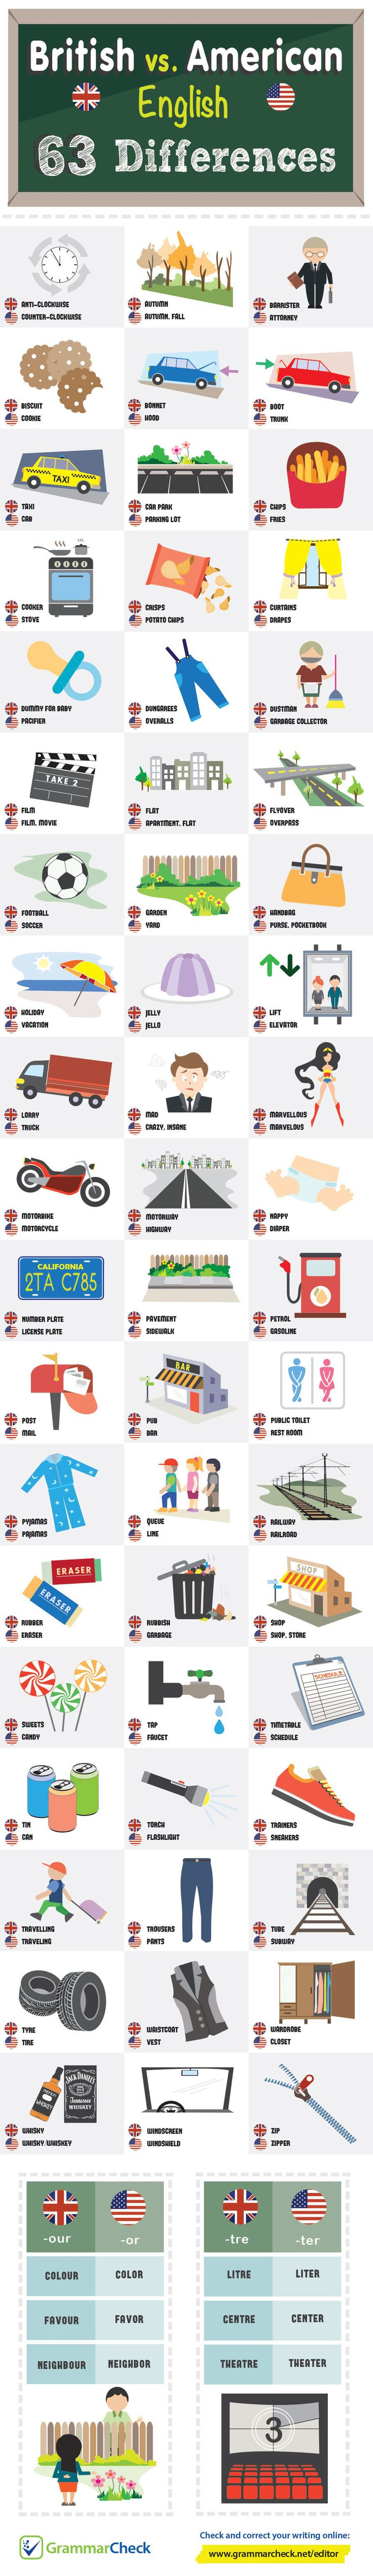 best spelling and grammar check ideas this is a useful list for differences in spelling and word usage in british and american